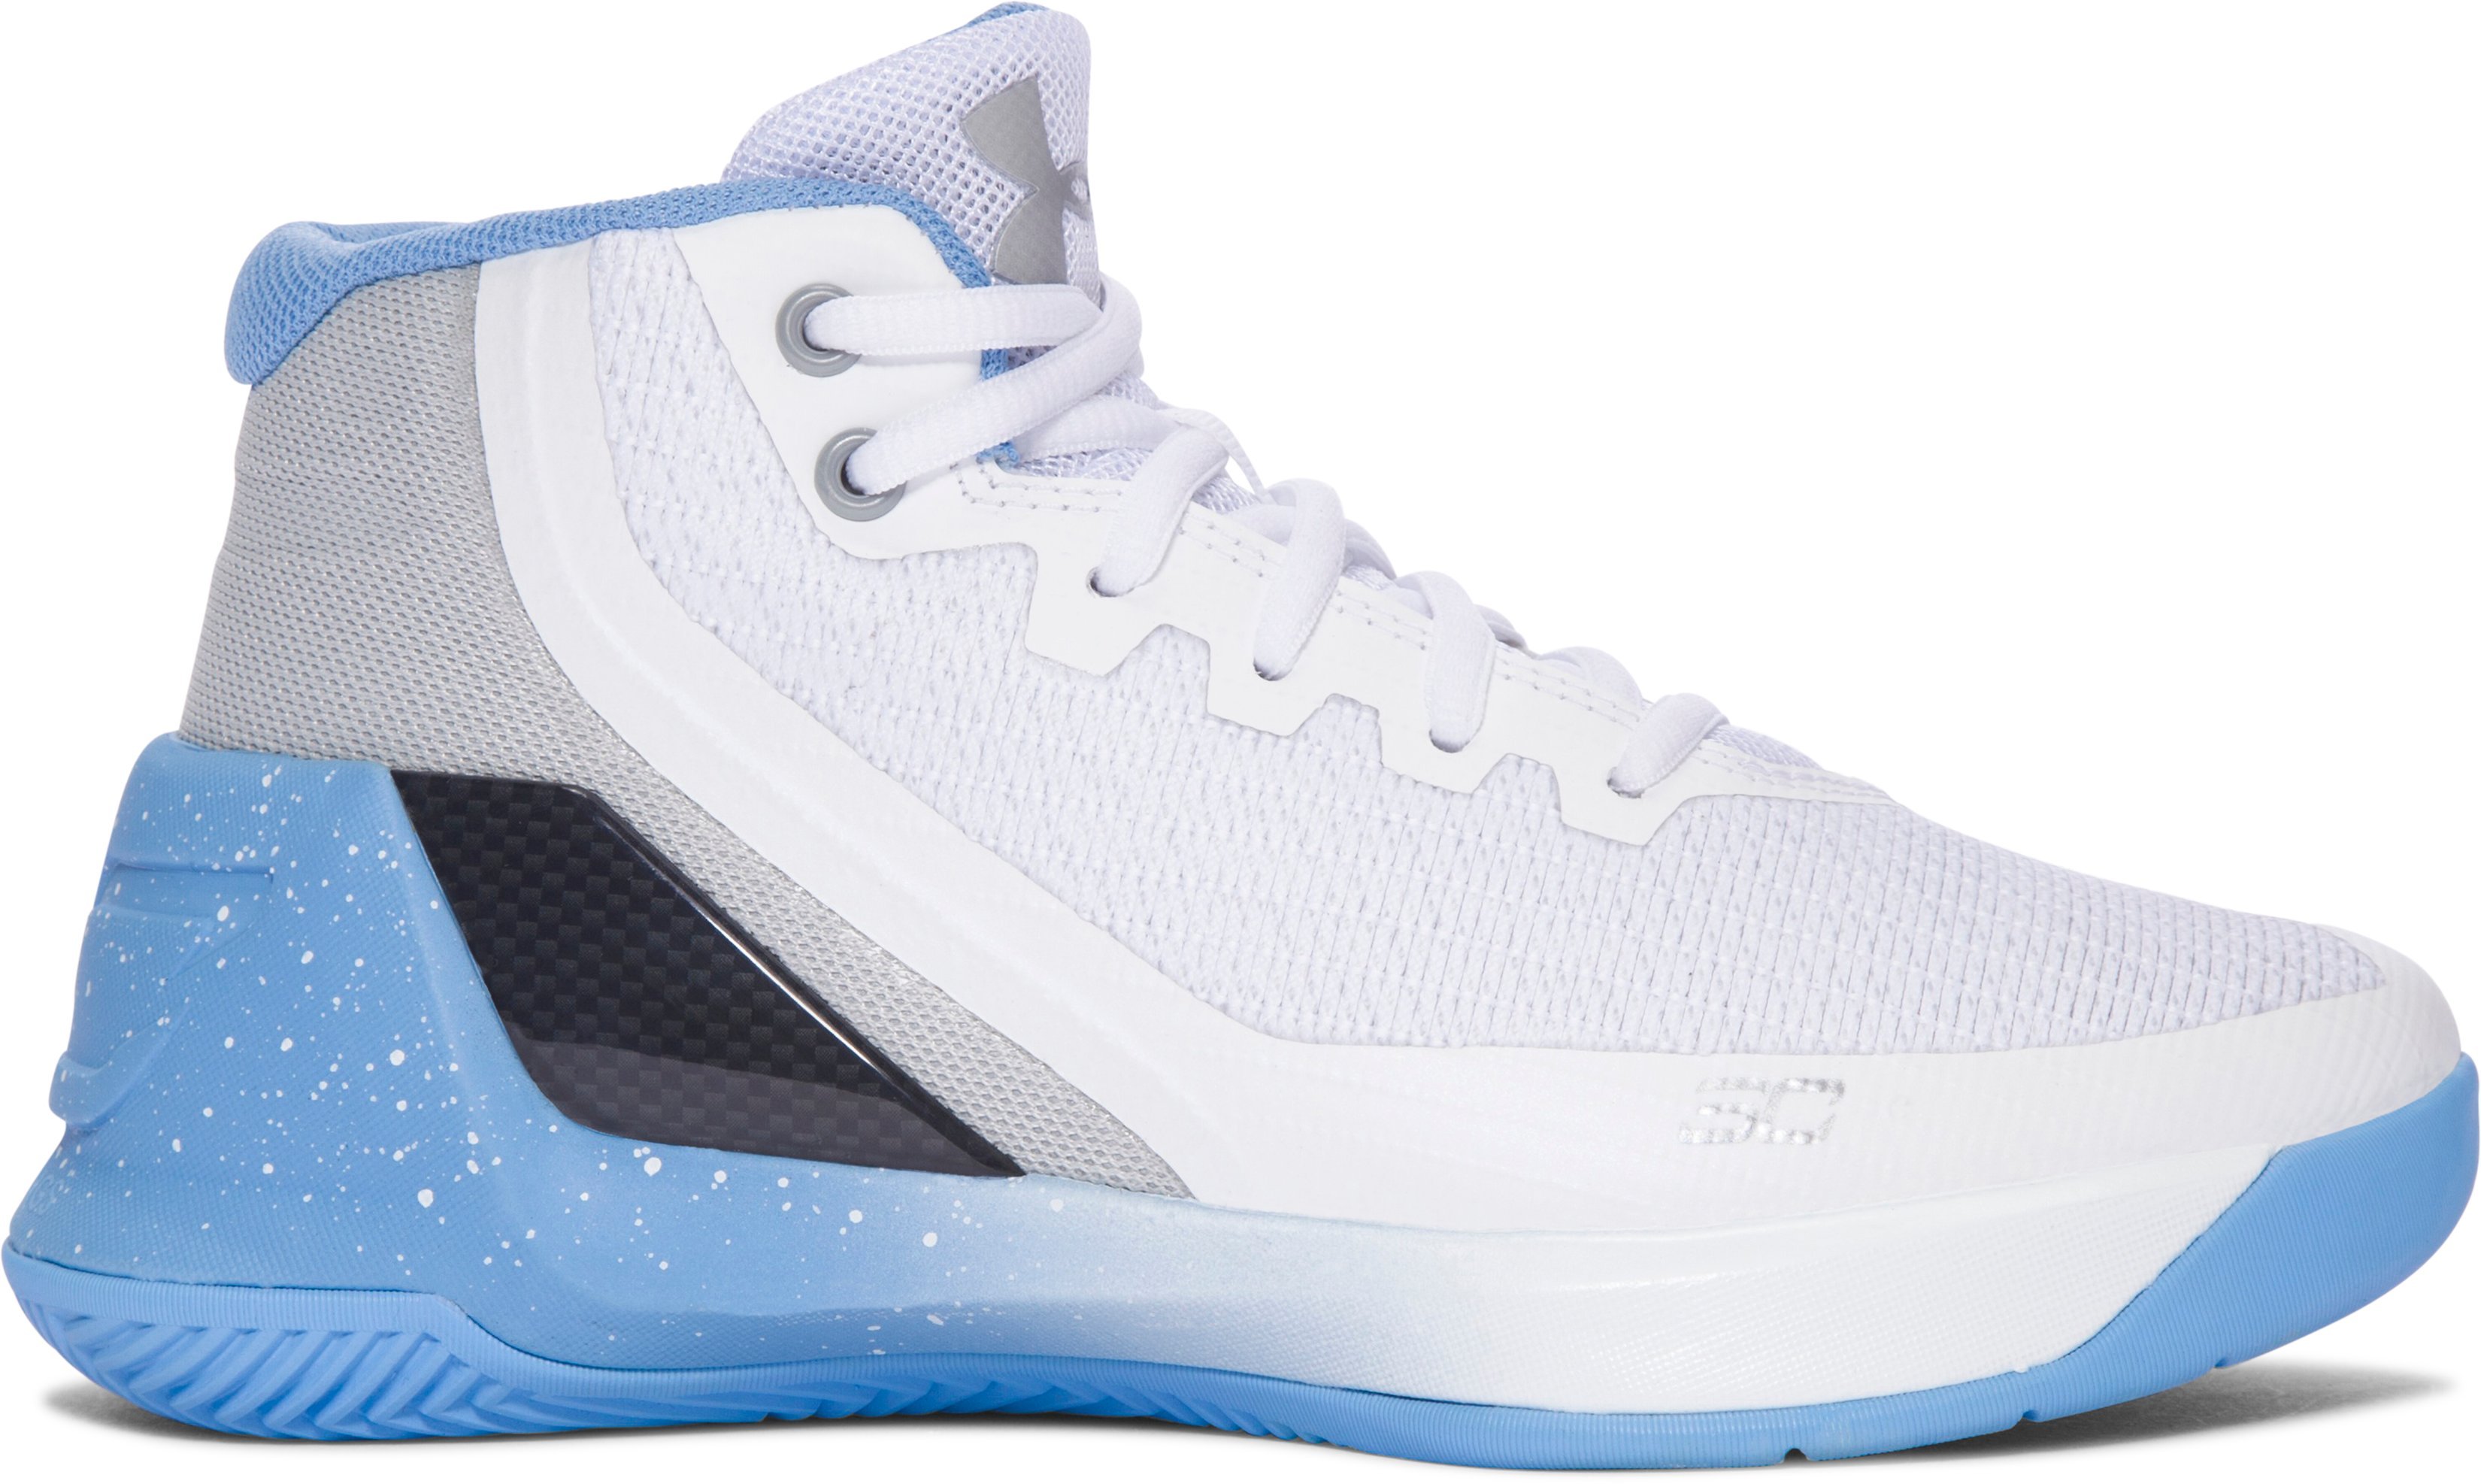 Pre-School UA Curry 3 Basketball Shoes, White